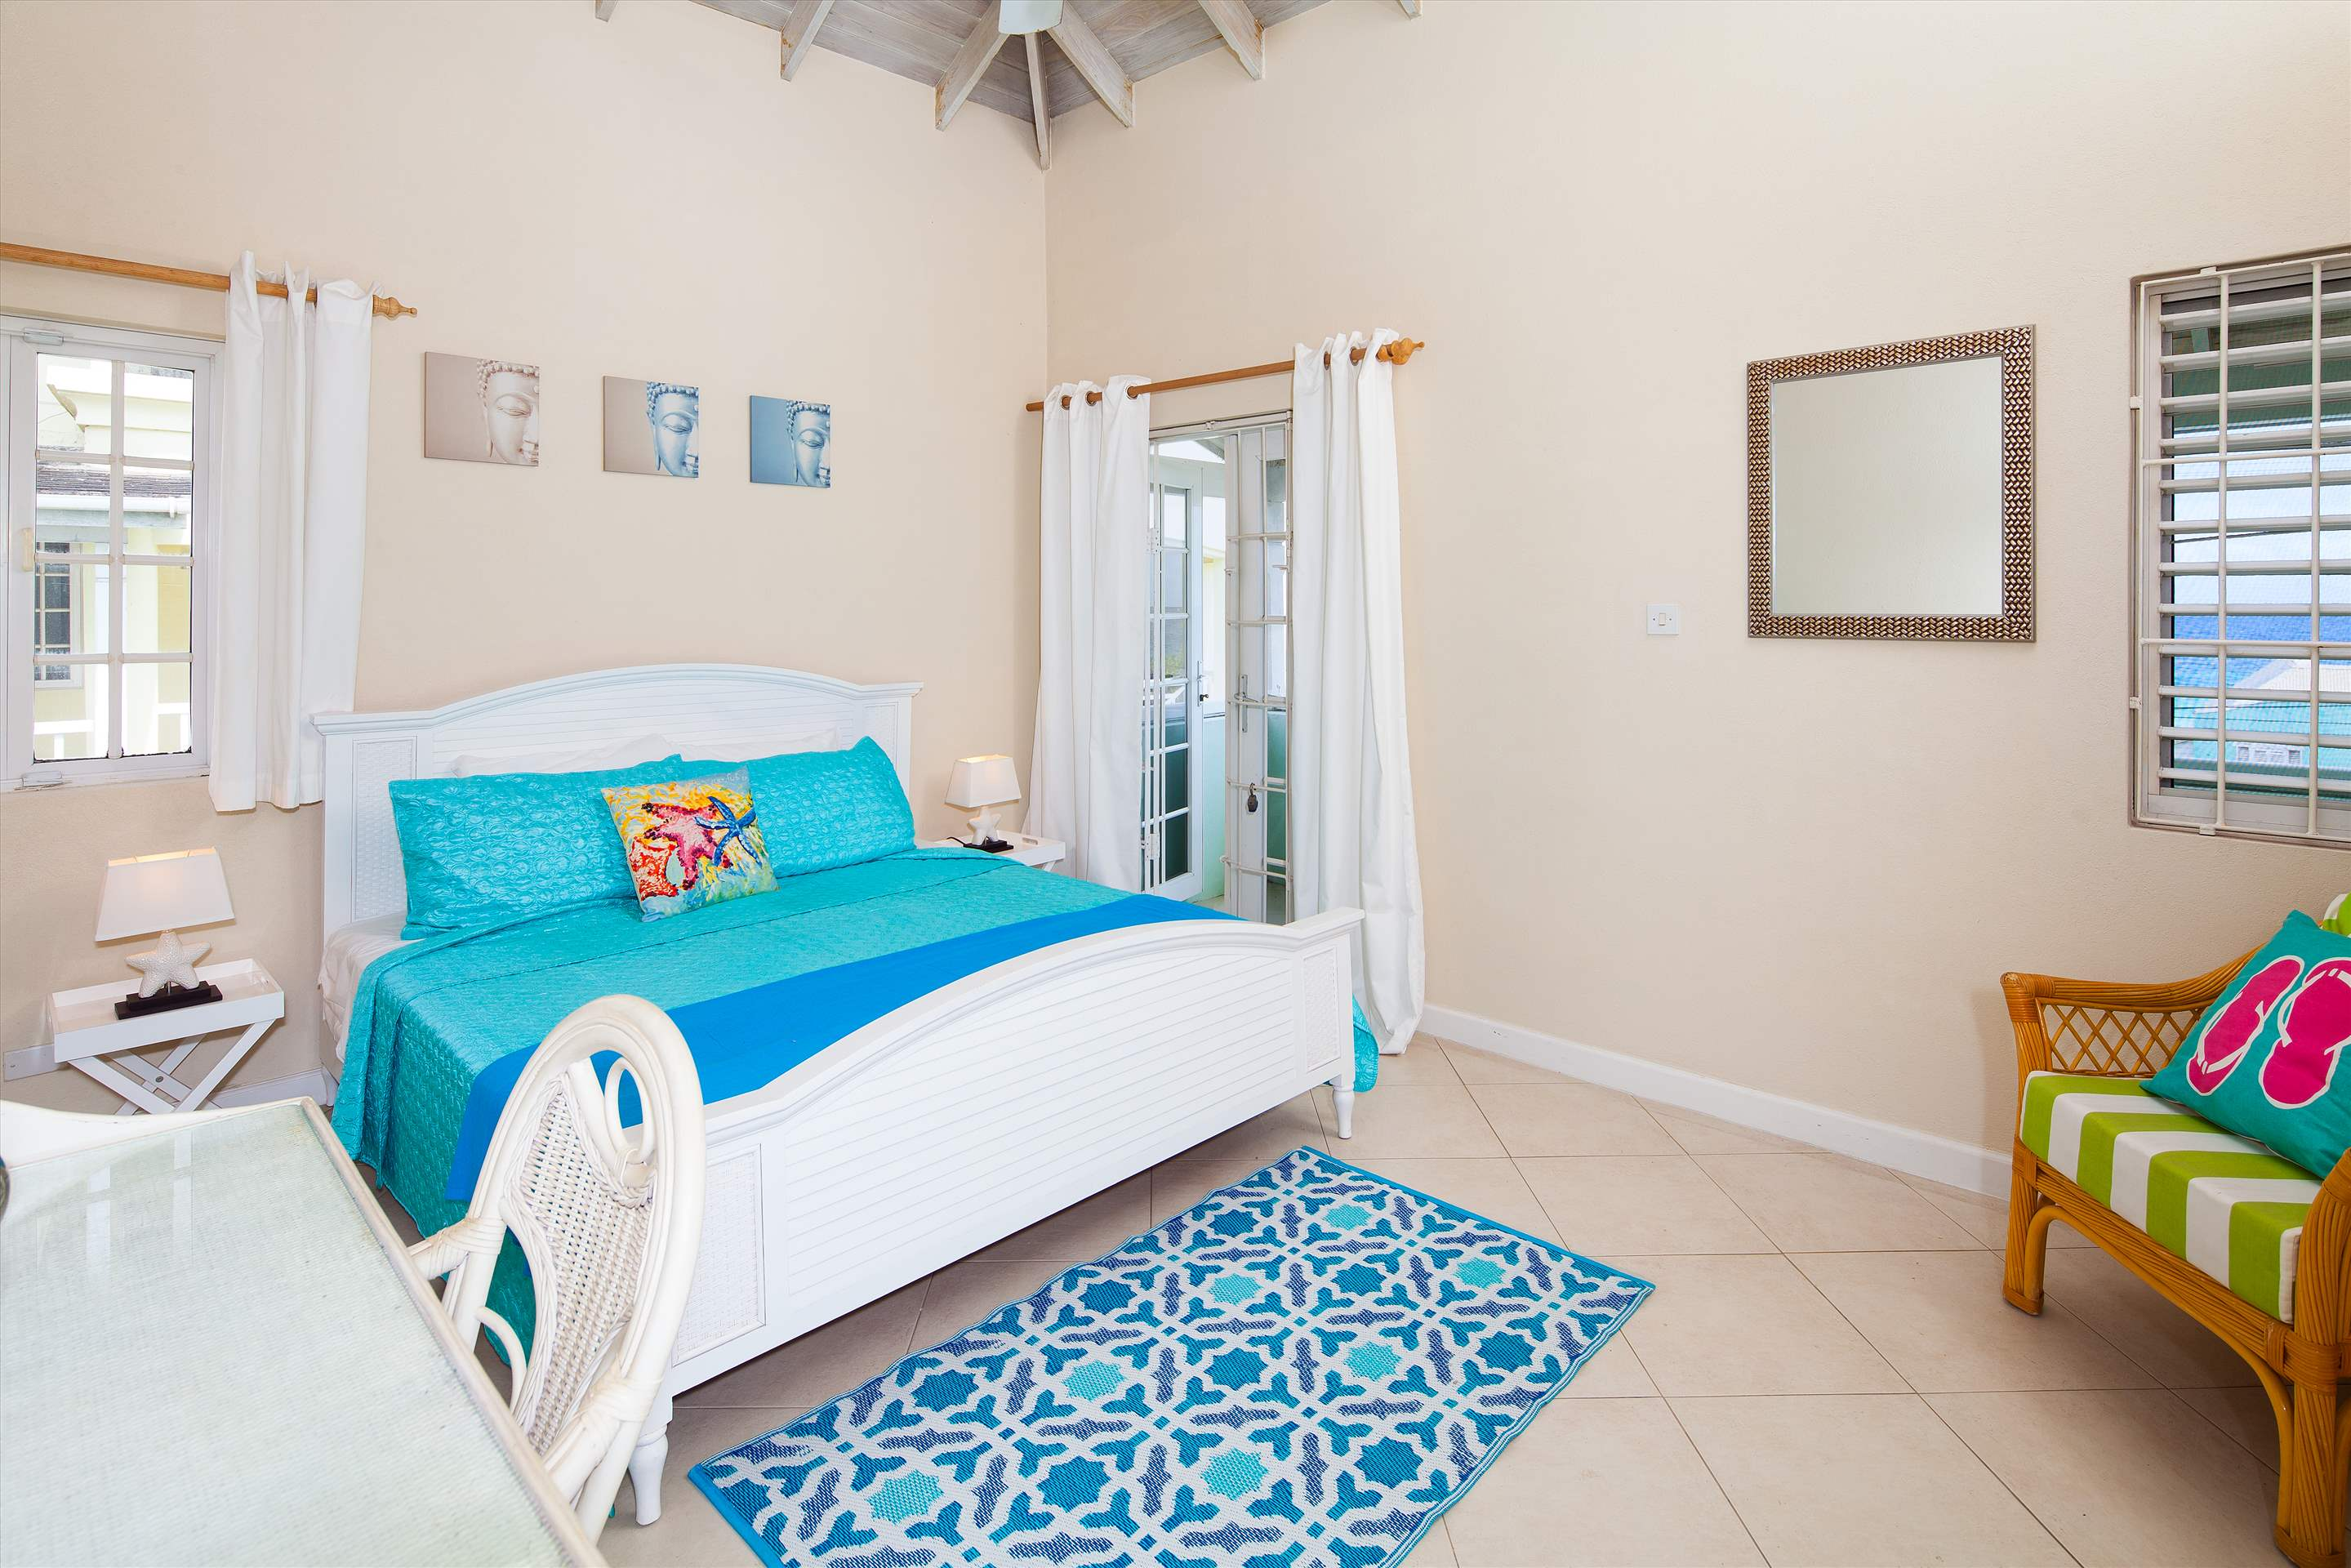 Margate Gardens 4, 3 bedroom, 3 bedroom apartment in St. Lawrence Gap & South Coast, Barbados Photo #9